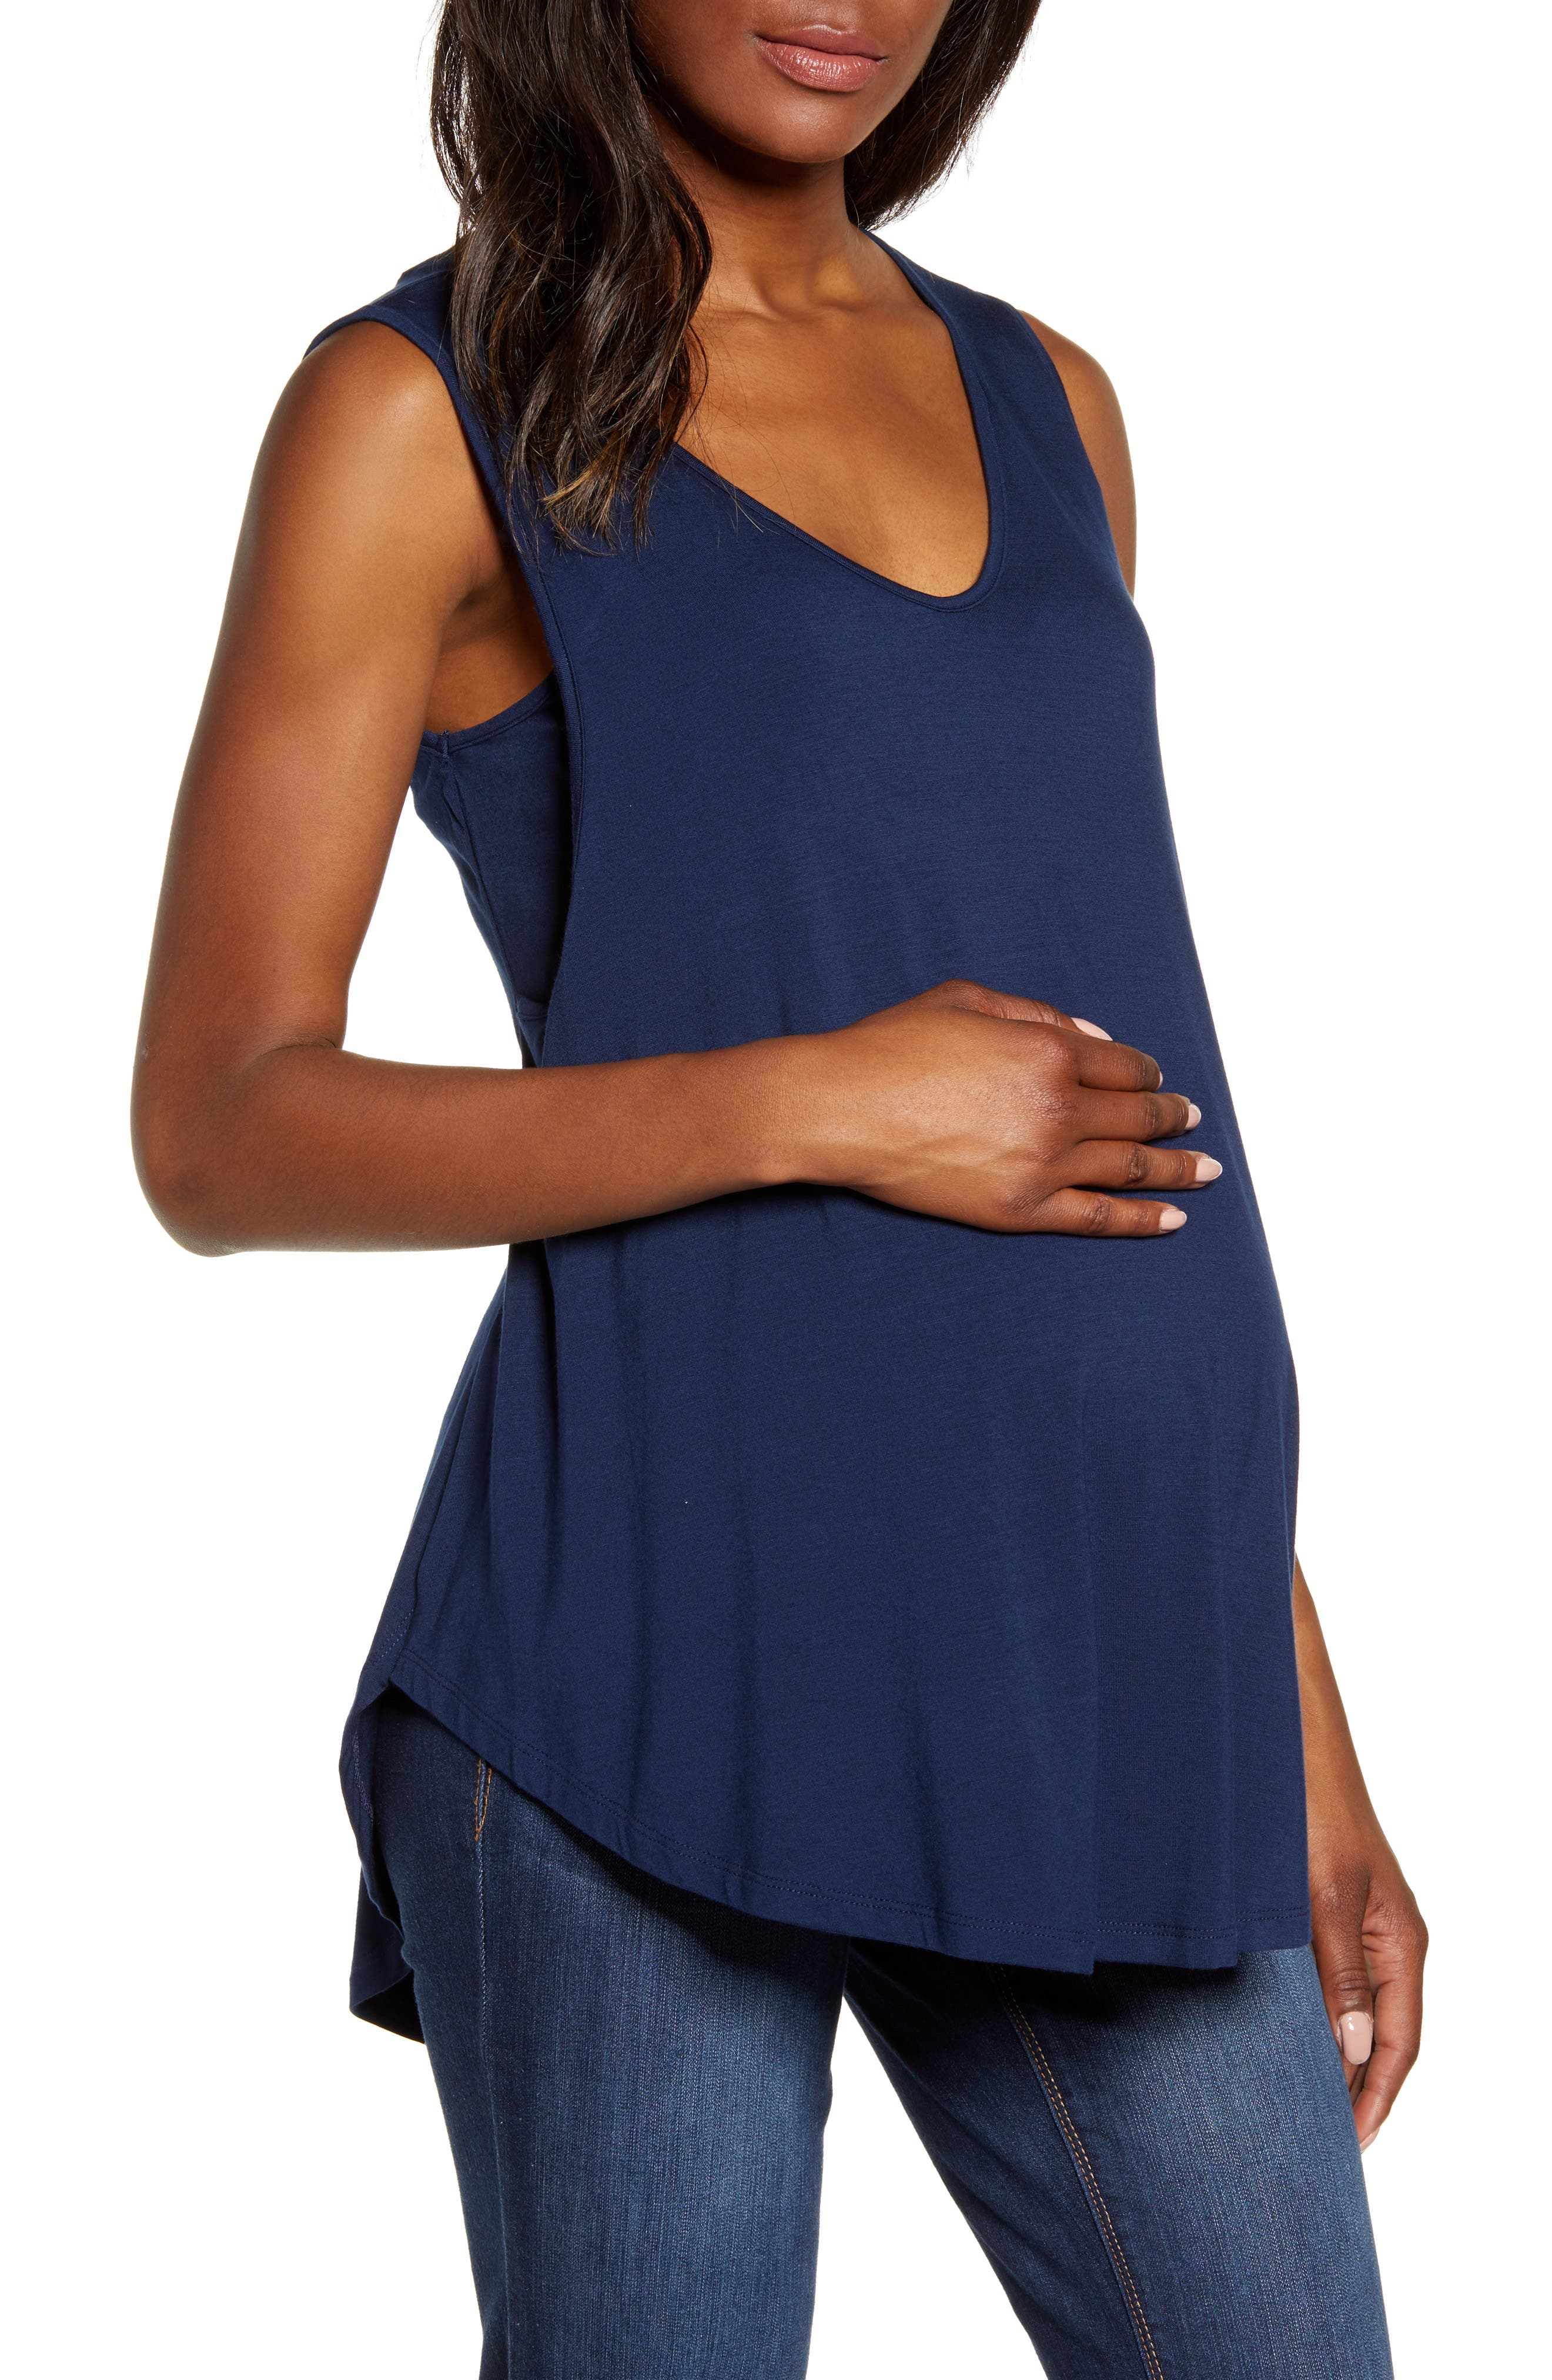 Keep cool on steamy days in this bump-friendly tank in a swingy silhouette designed with nursing panels for discreet access after baby arrives. Style Name: Angel Maternity Swing Maternity/nursing Tank. Style Number: 5852626. Available in stores.